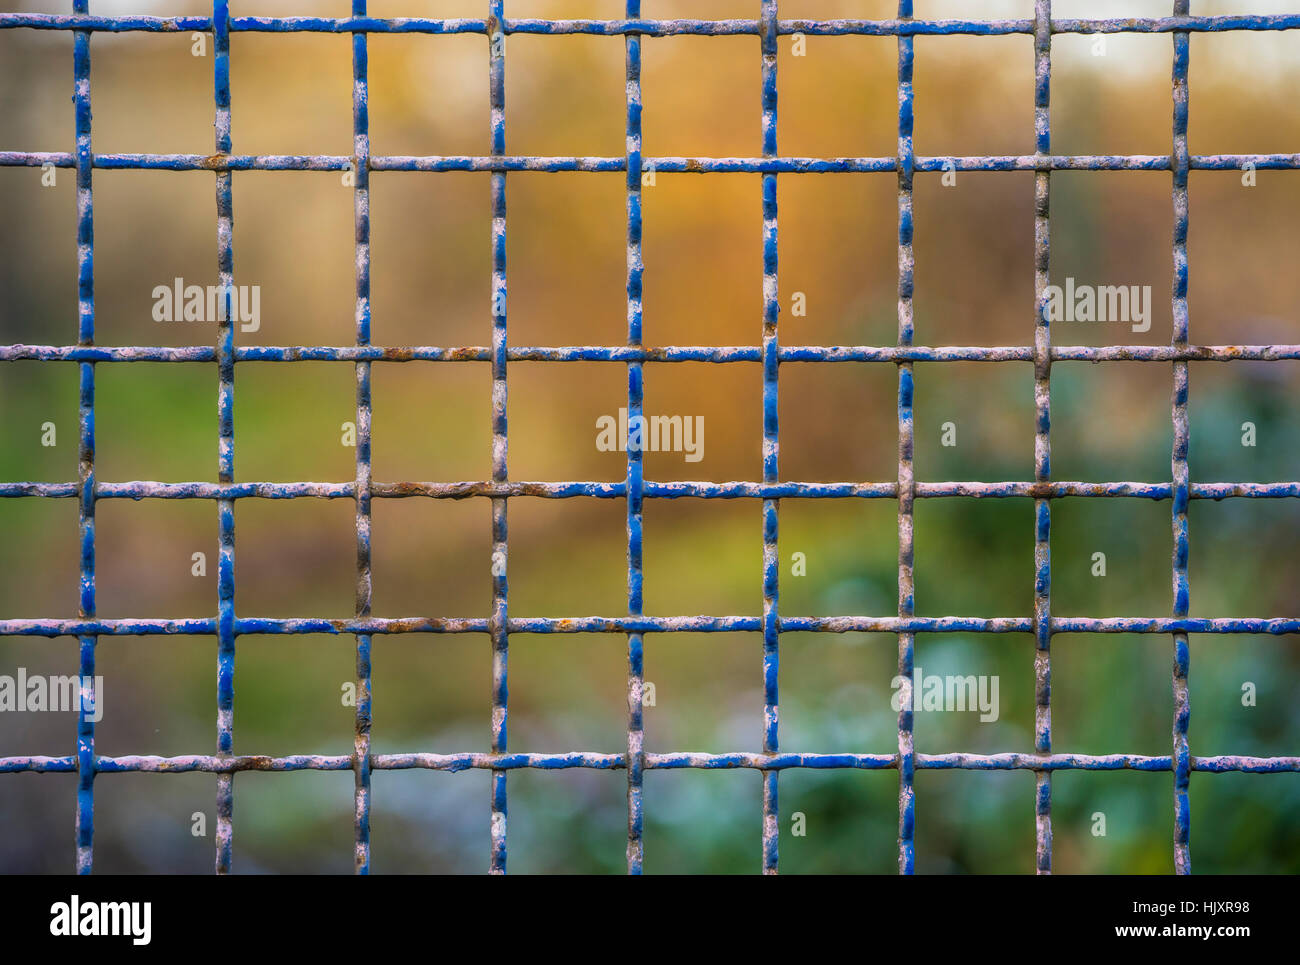 Steel and rusty grid fence with blurred background - Stock Image